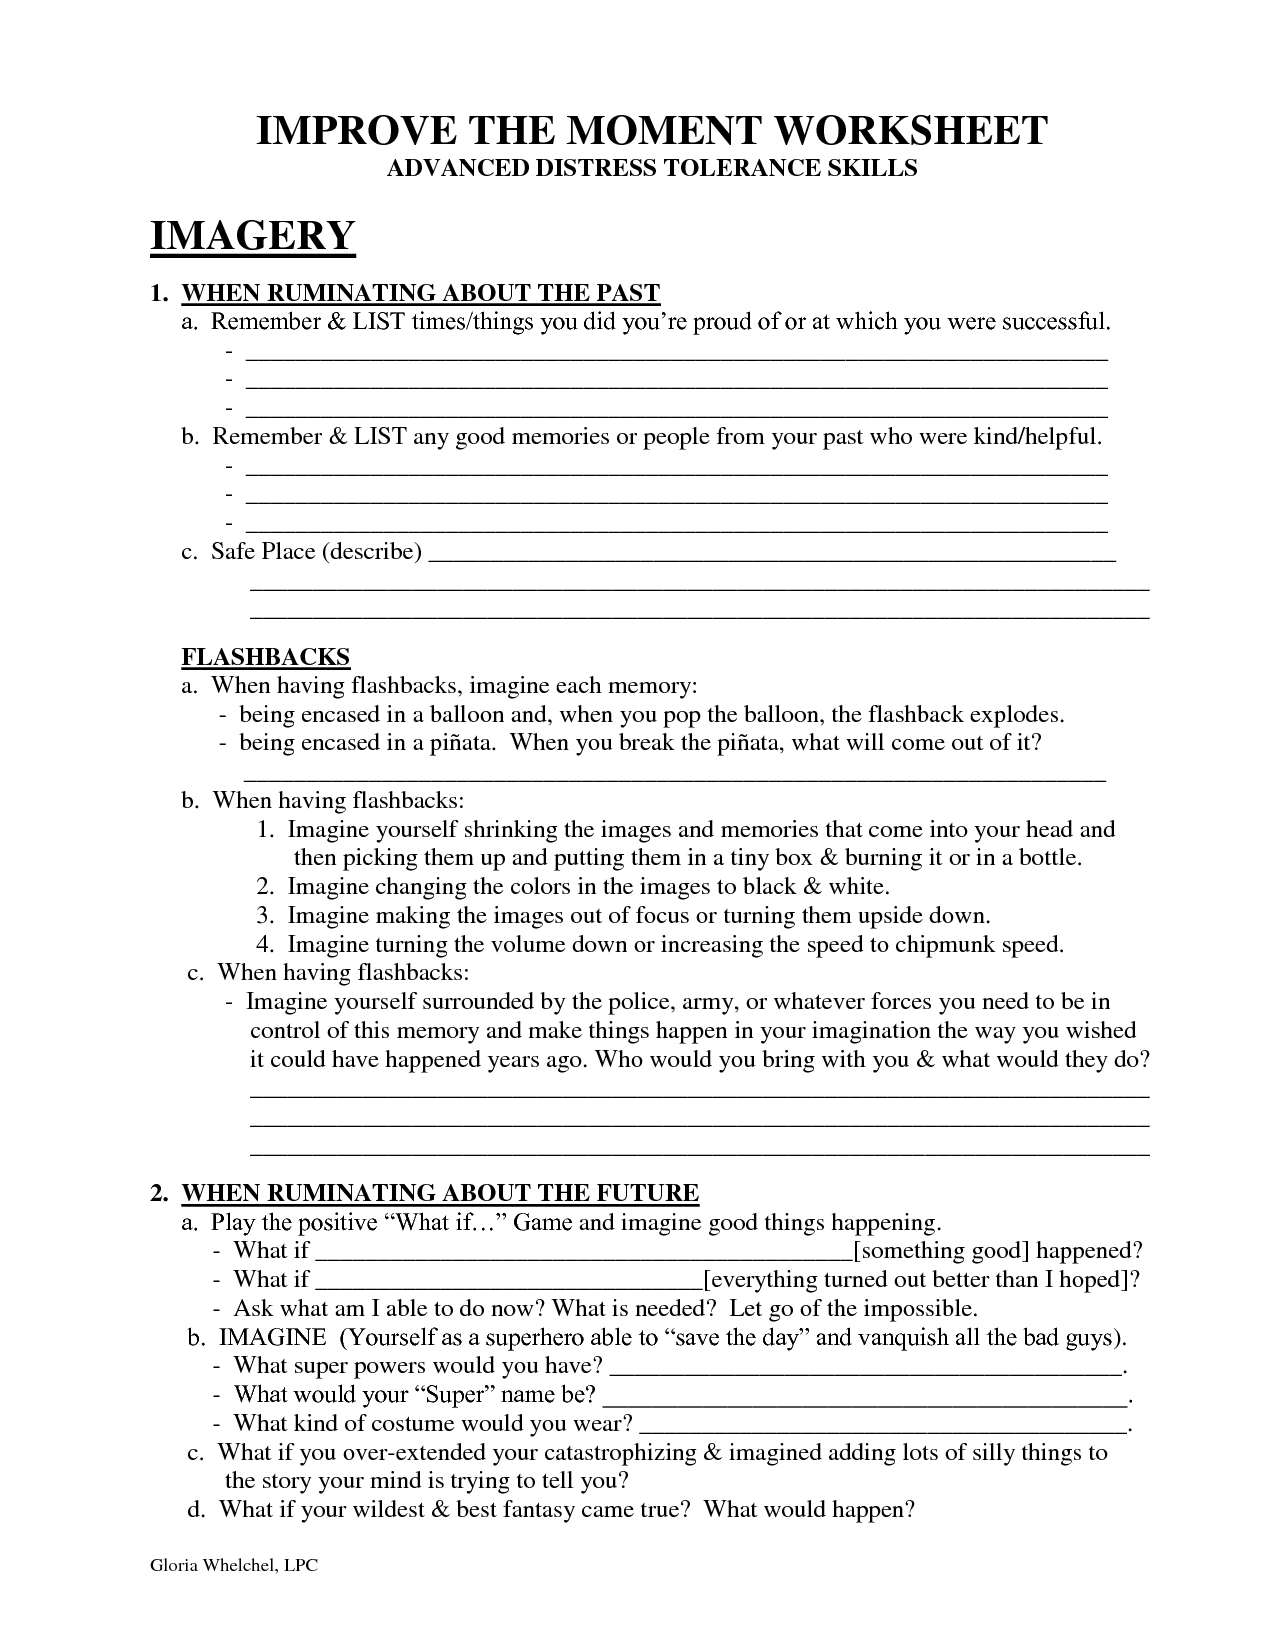 Worksheets Test Anxiety Worksheets improve the moment worksheet dbt self help therapy parenting help